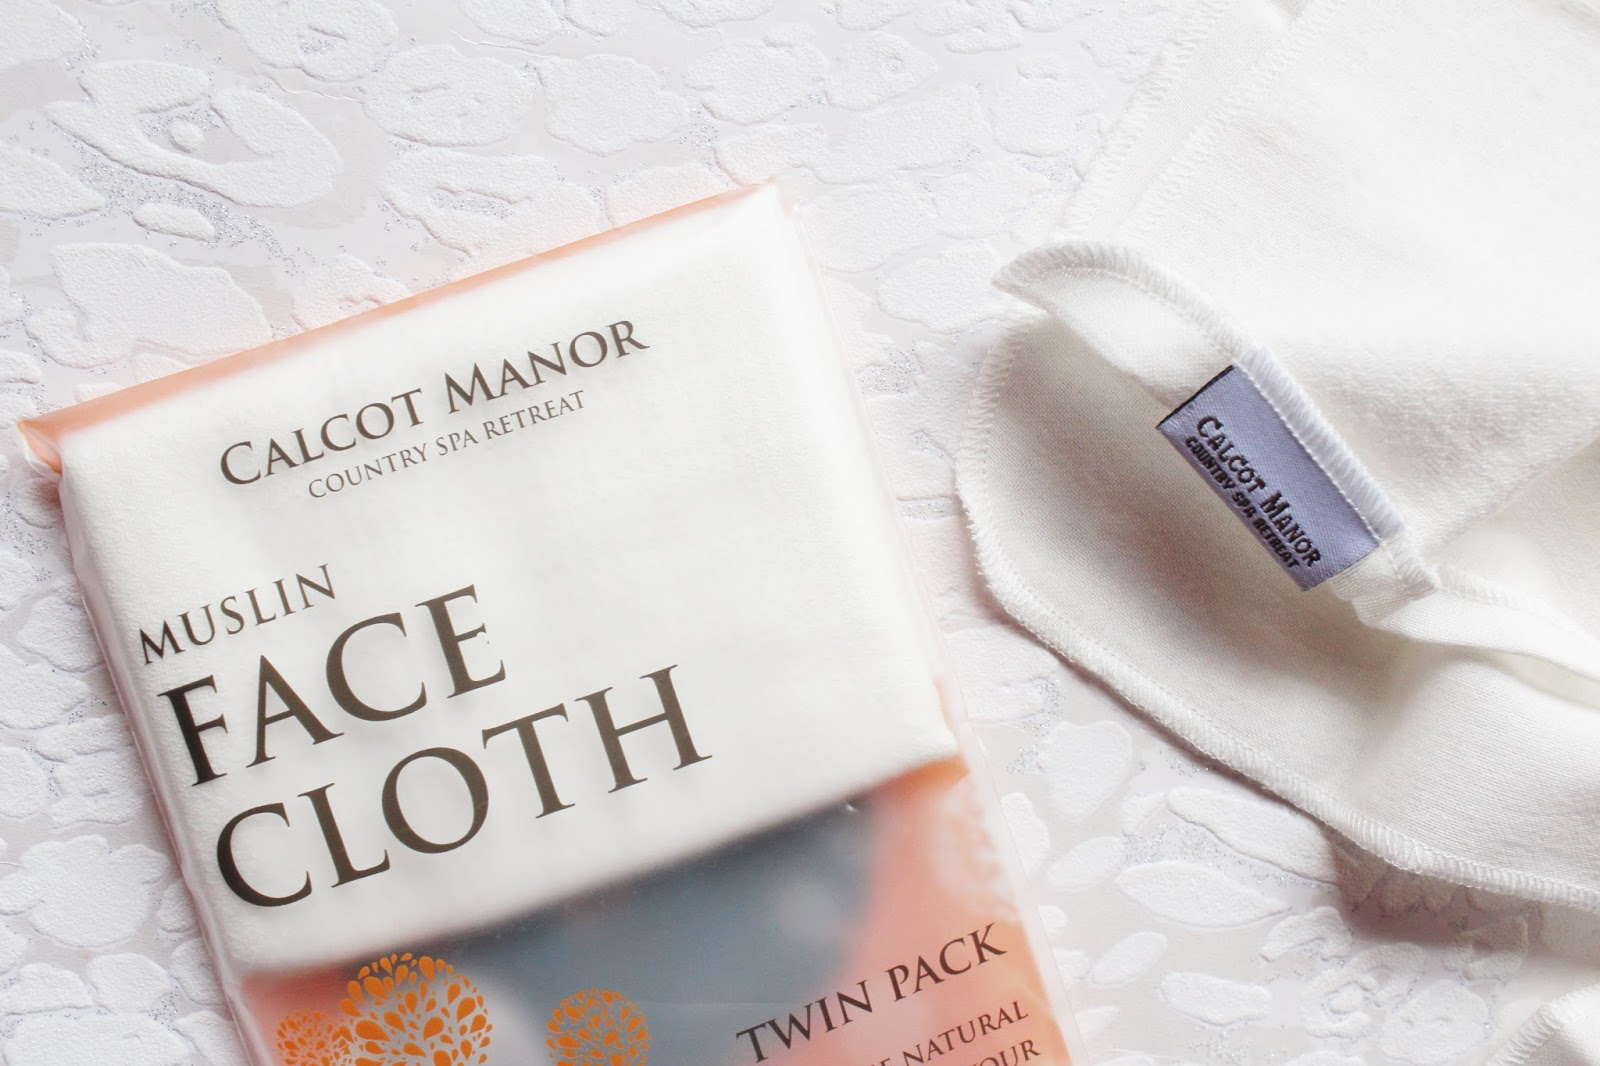 Calcot Manor Spa Accessories at Tesco